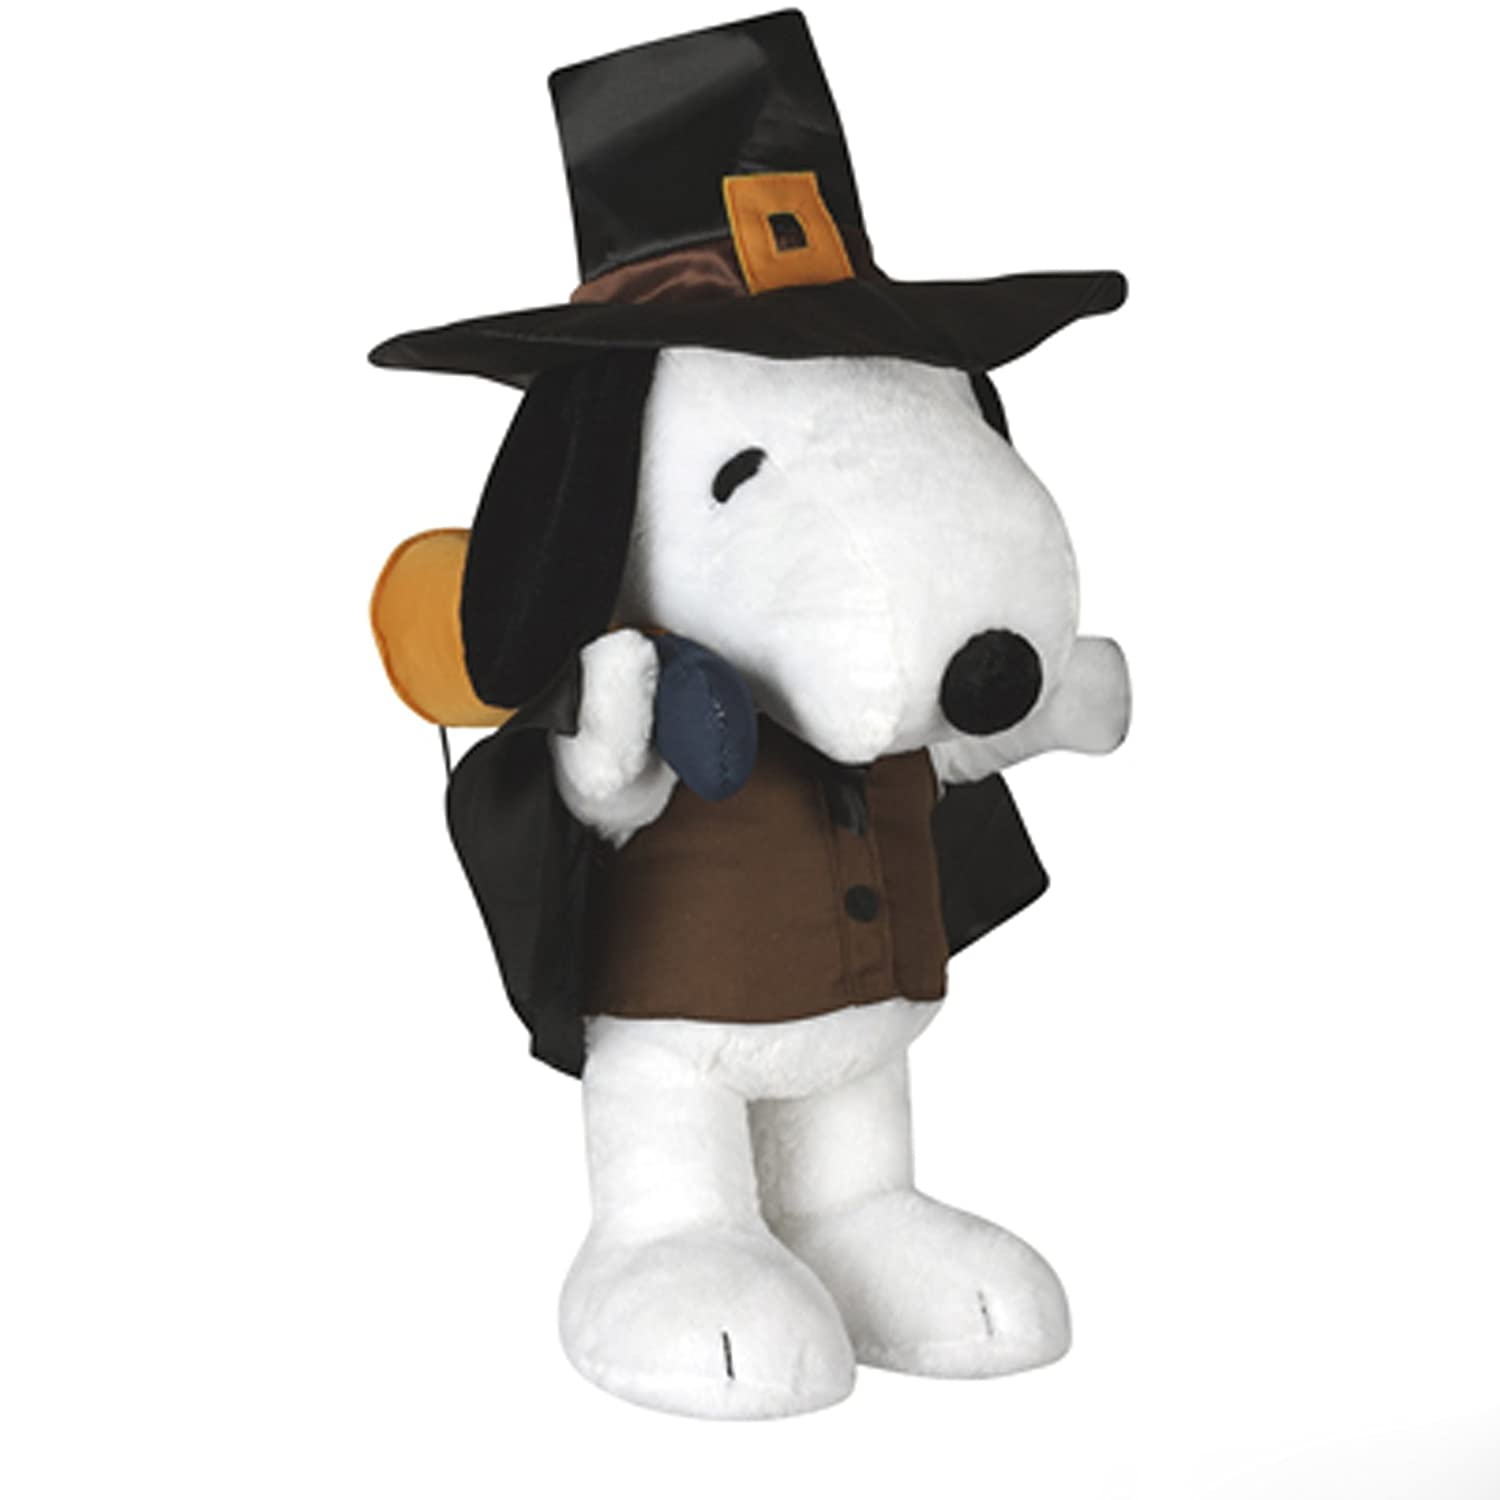 Lighted outdoor thanksgiving decorations - 2 Foot Tall Peanuts Snoopy Dressed As Pilgrim Thanksgiving Plush Greeter By Gemmy Snoopy Dressed As Pilgrim Stands Approximately 24 Inches Tall